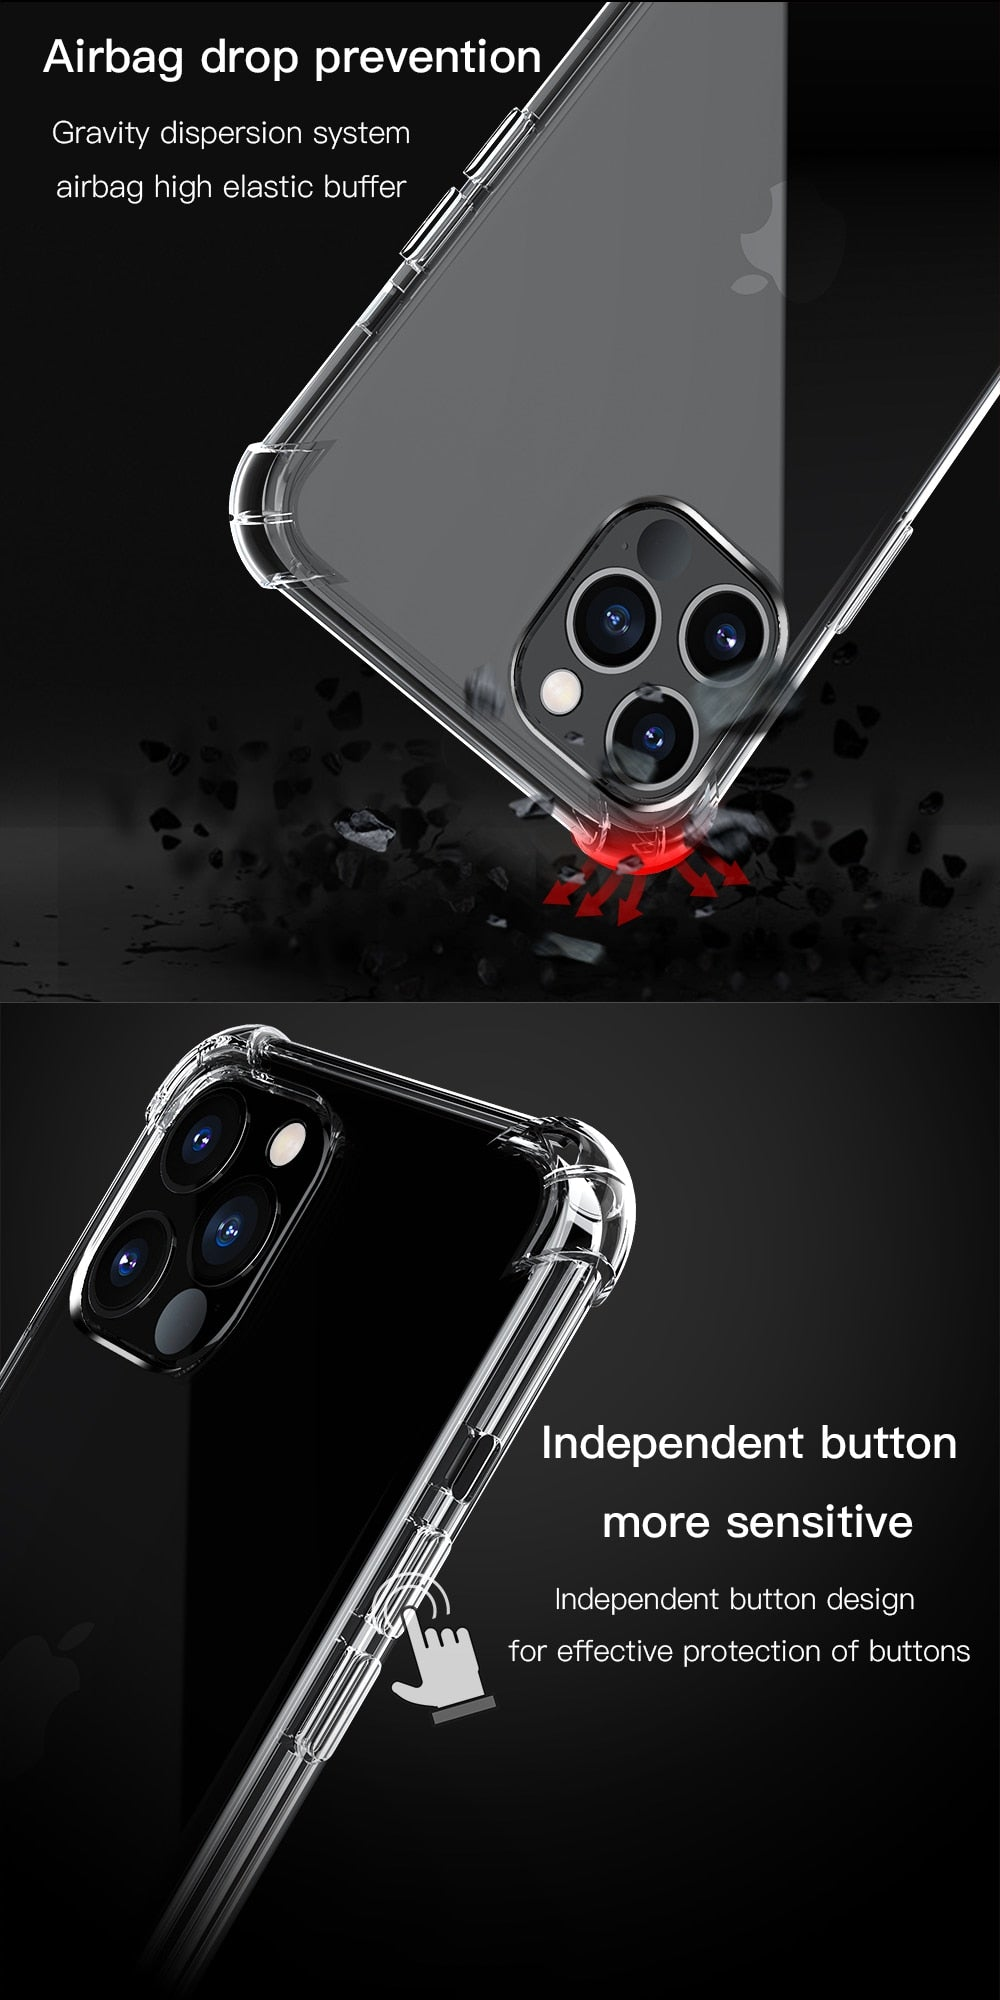 Shockproof Airbag Bumper Transparent Soft Silicone Fitted Back Cover Case for iPhone 12 12 Mini iPhone 12 Pro 11 Pro Max X XR With Increased Lens Protection